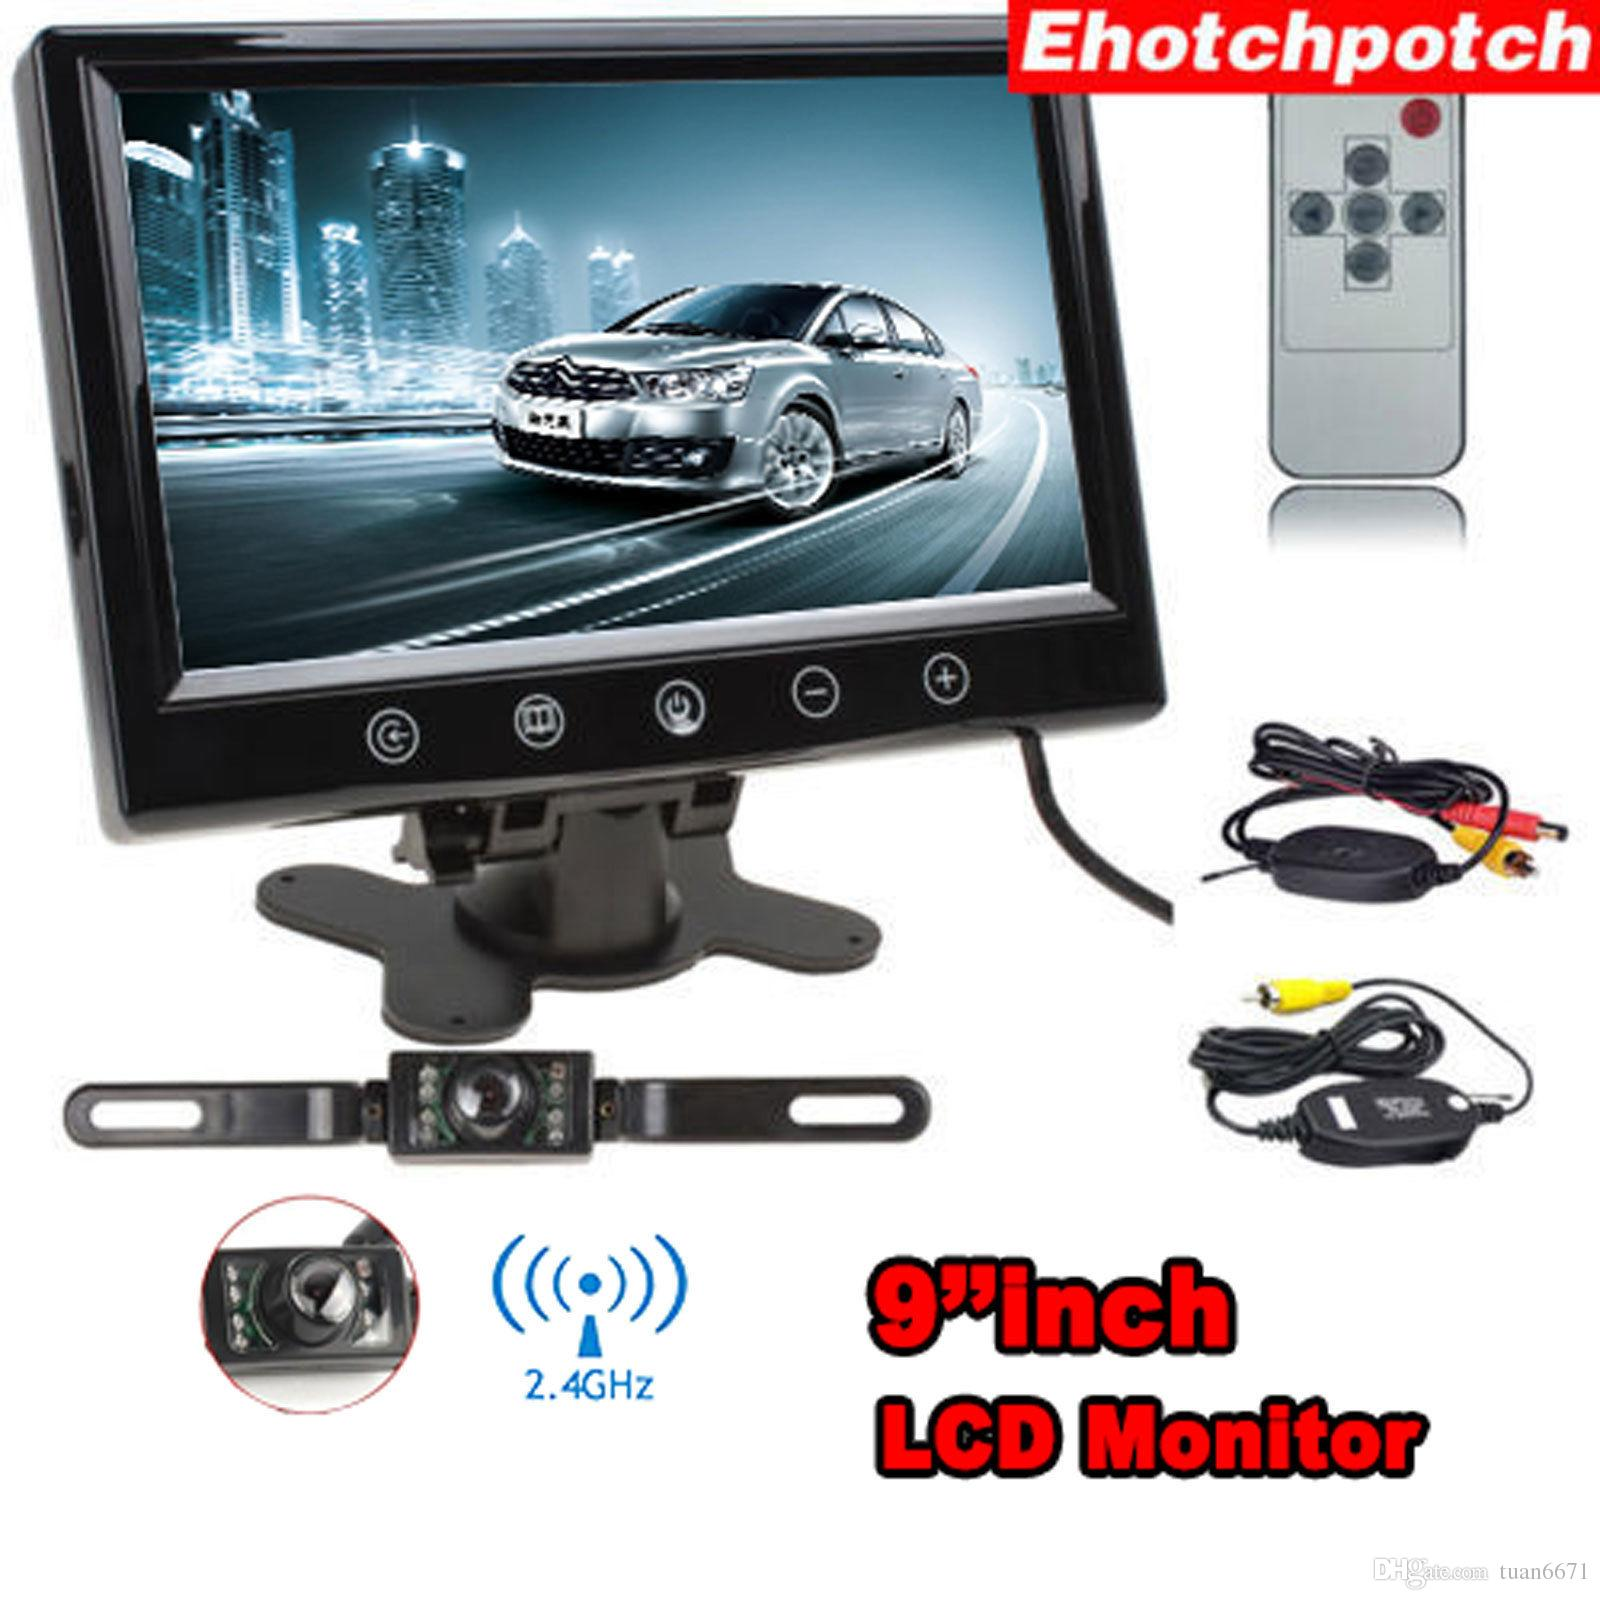 hight resolution of  in the box 1x 7 inch tft lcd mirror monitor 1x power cable 1x car backup camera 1x wireless transmitter 1x wireless receiver 1x installing diagram